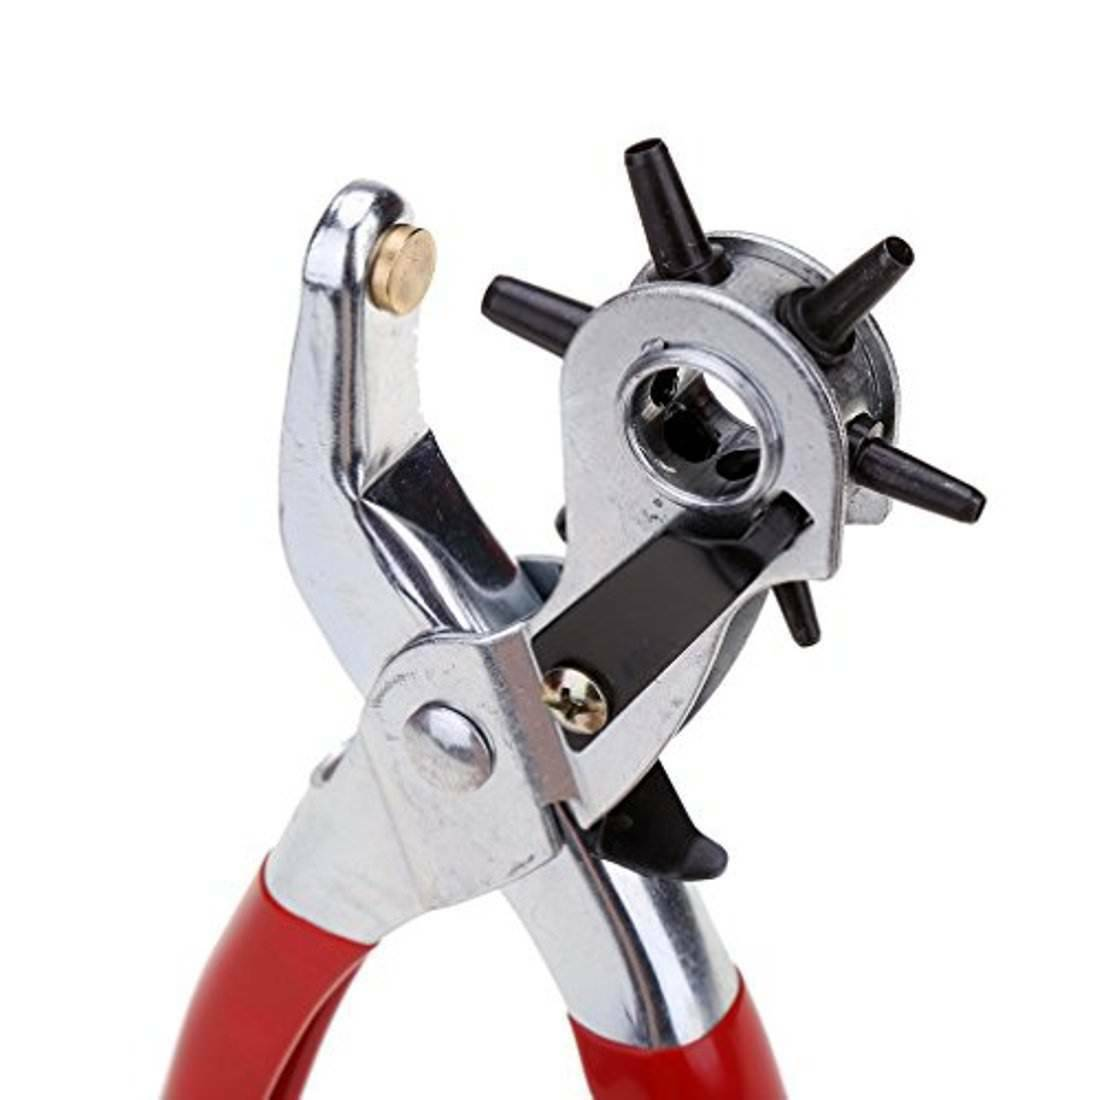 6 Sized 9″ Heavy Duty Leather Hole Punch Hand Pliers Belt Holes Punches Crafts